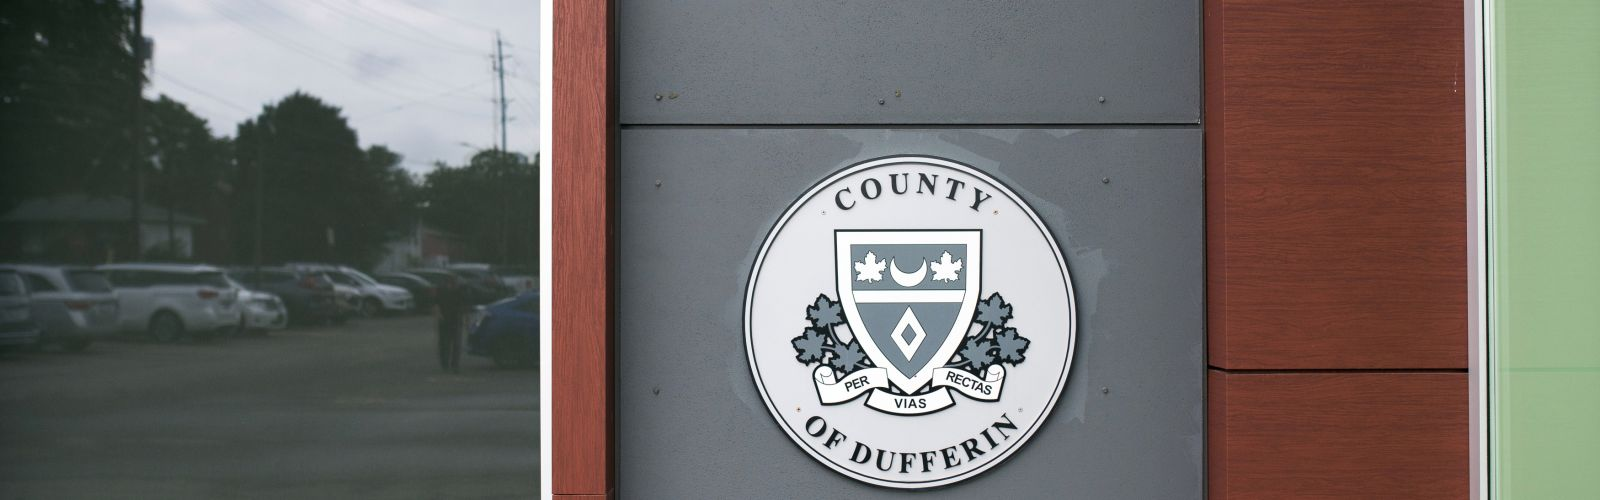 Dufferin County Logo